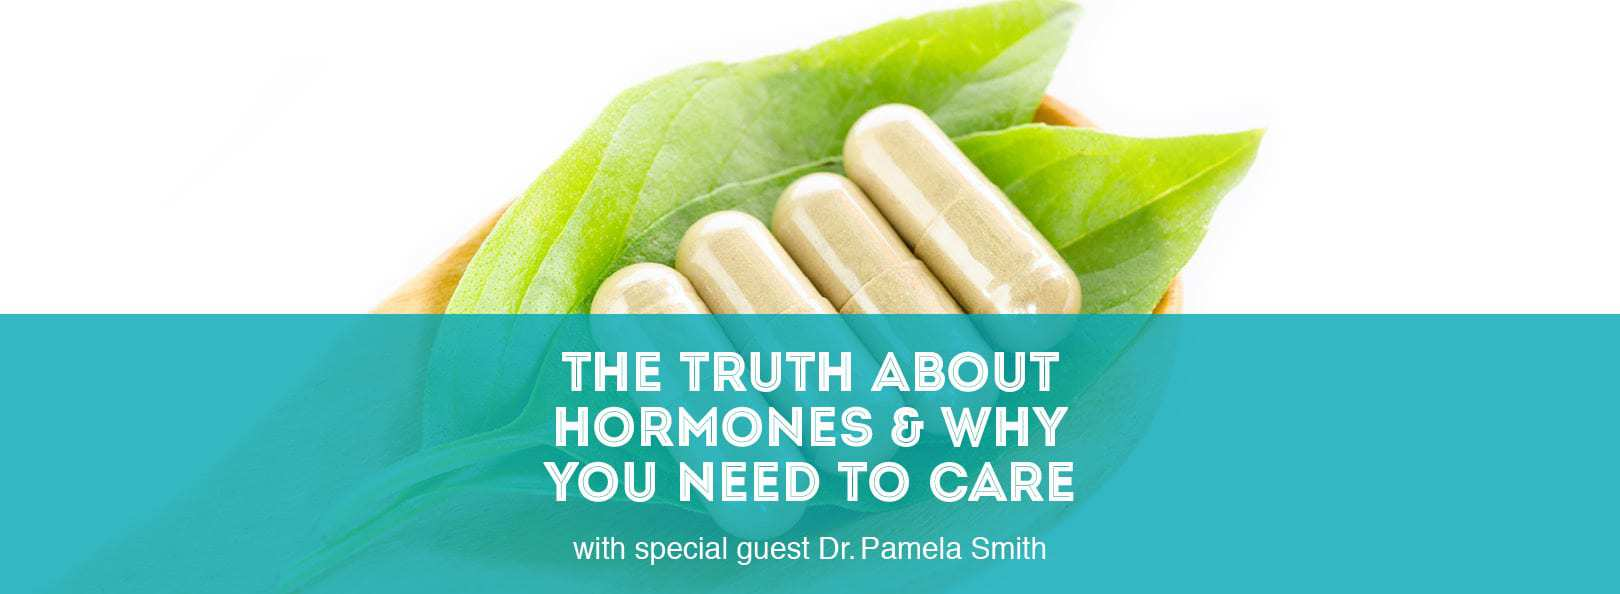 The Truth About Hormones and Why You Need to Care with special guest Dr. Pamela Smith